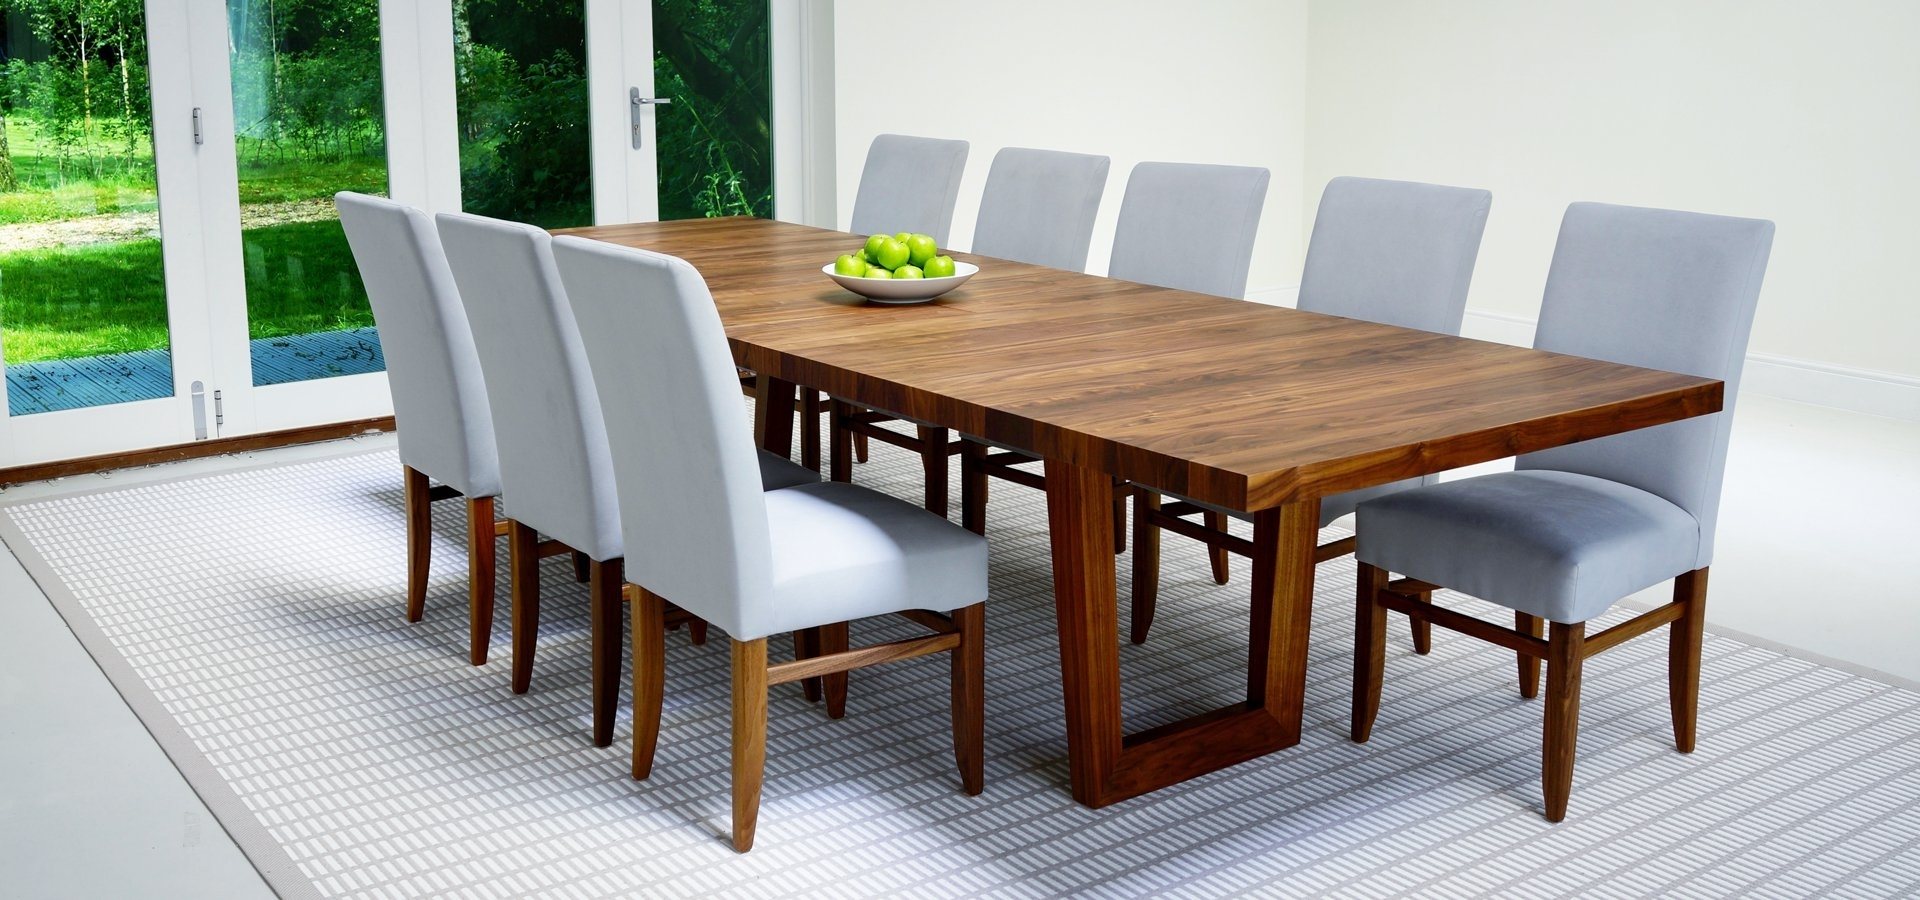 Extending Dining Table Sets – Castrophotos Intended For Most Popular Extending Dining Room Tables And Chairs (View 9 of 25)